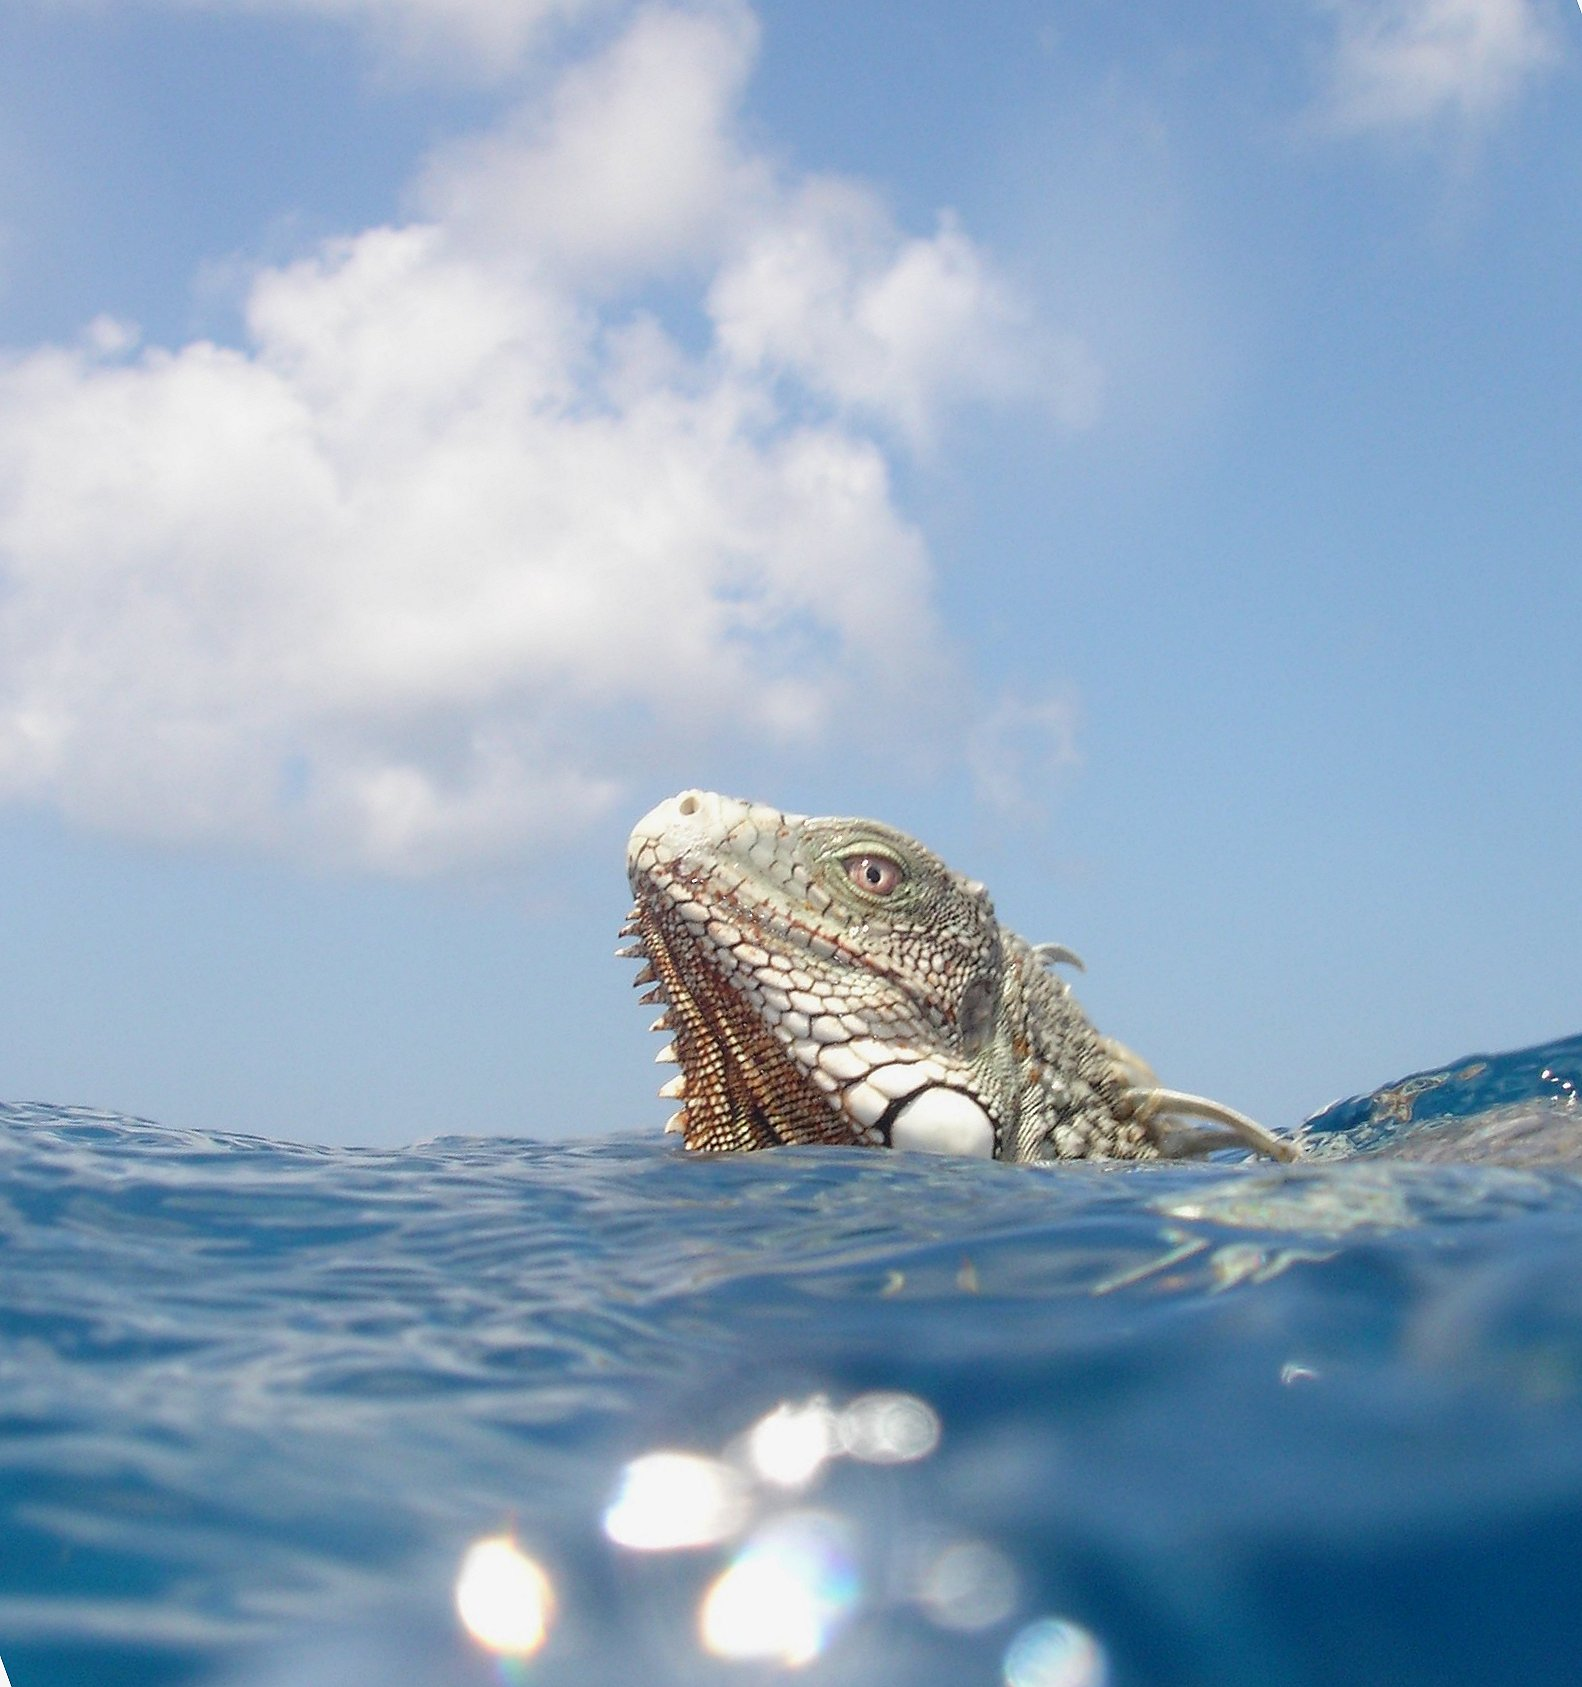 Photo by Timmmy Bonaire